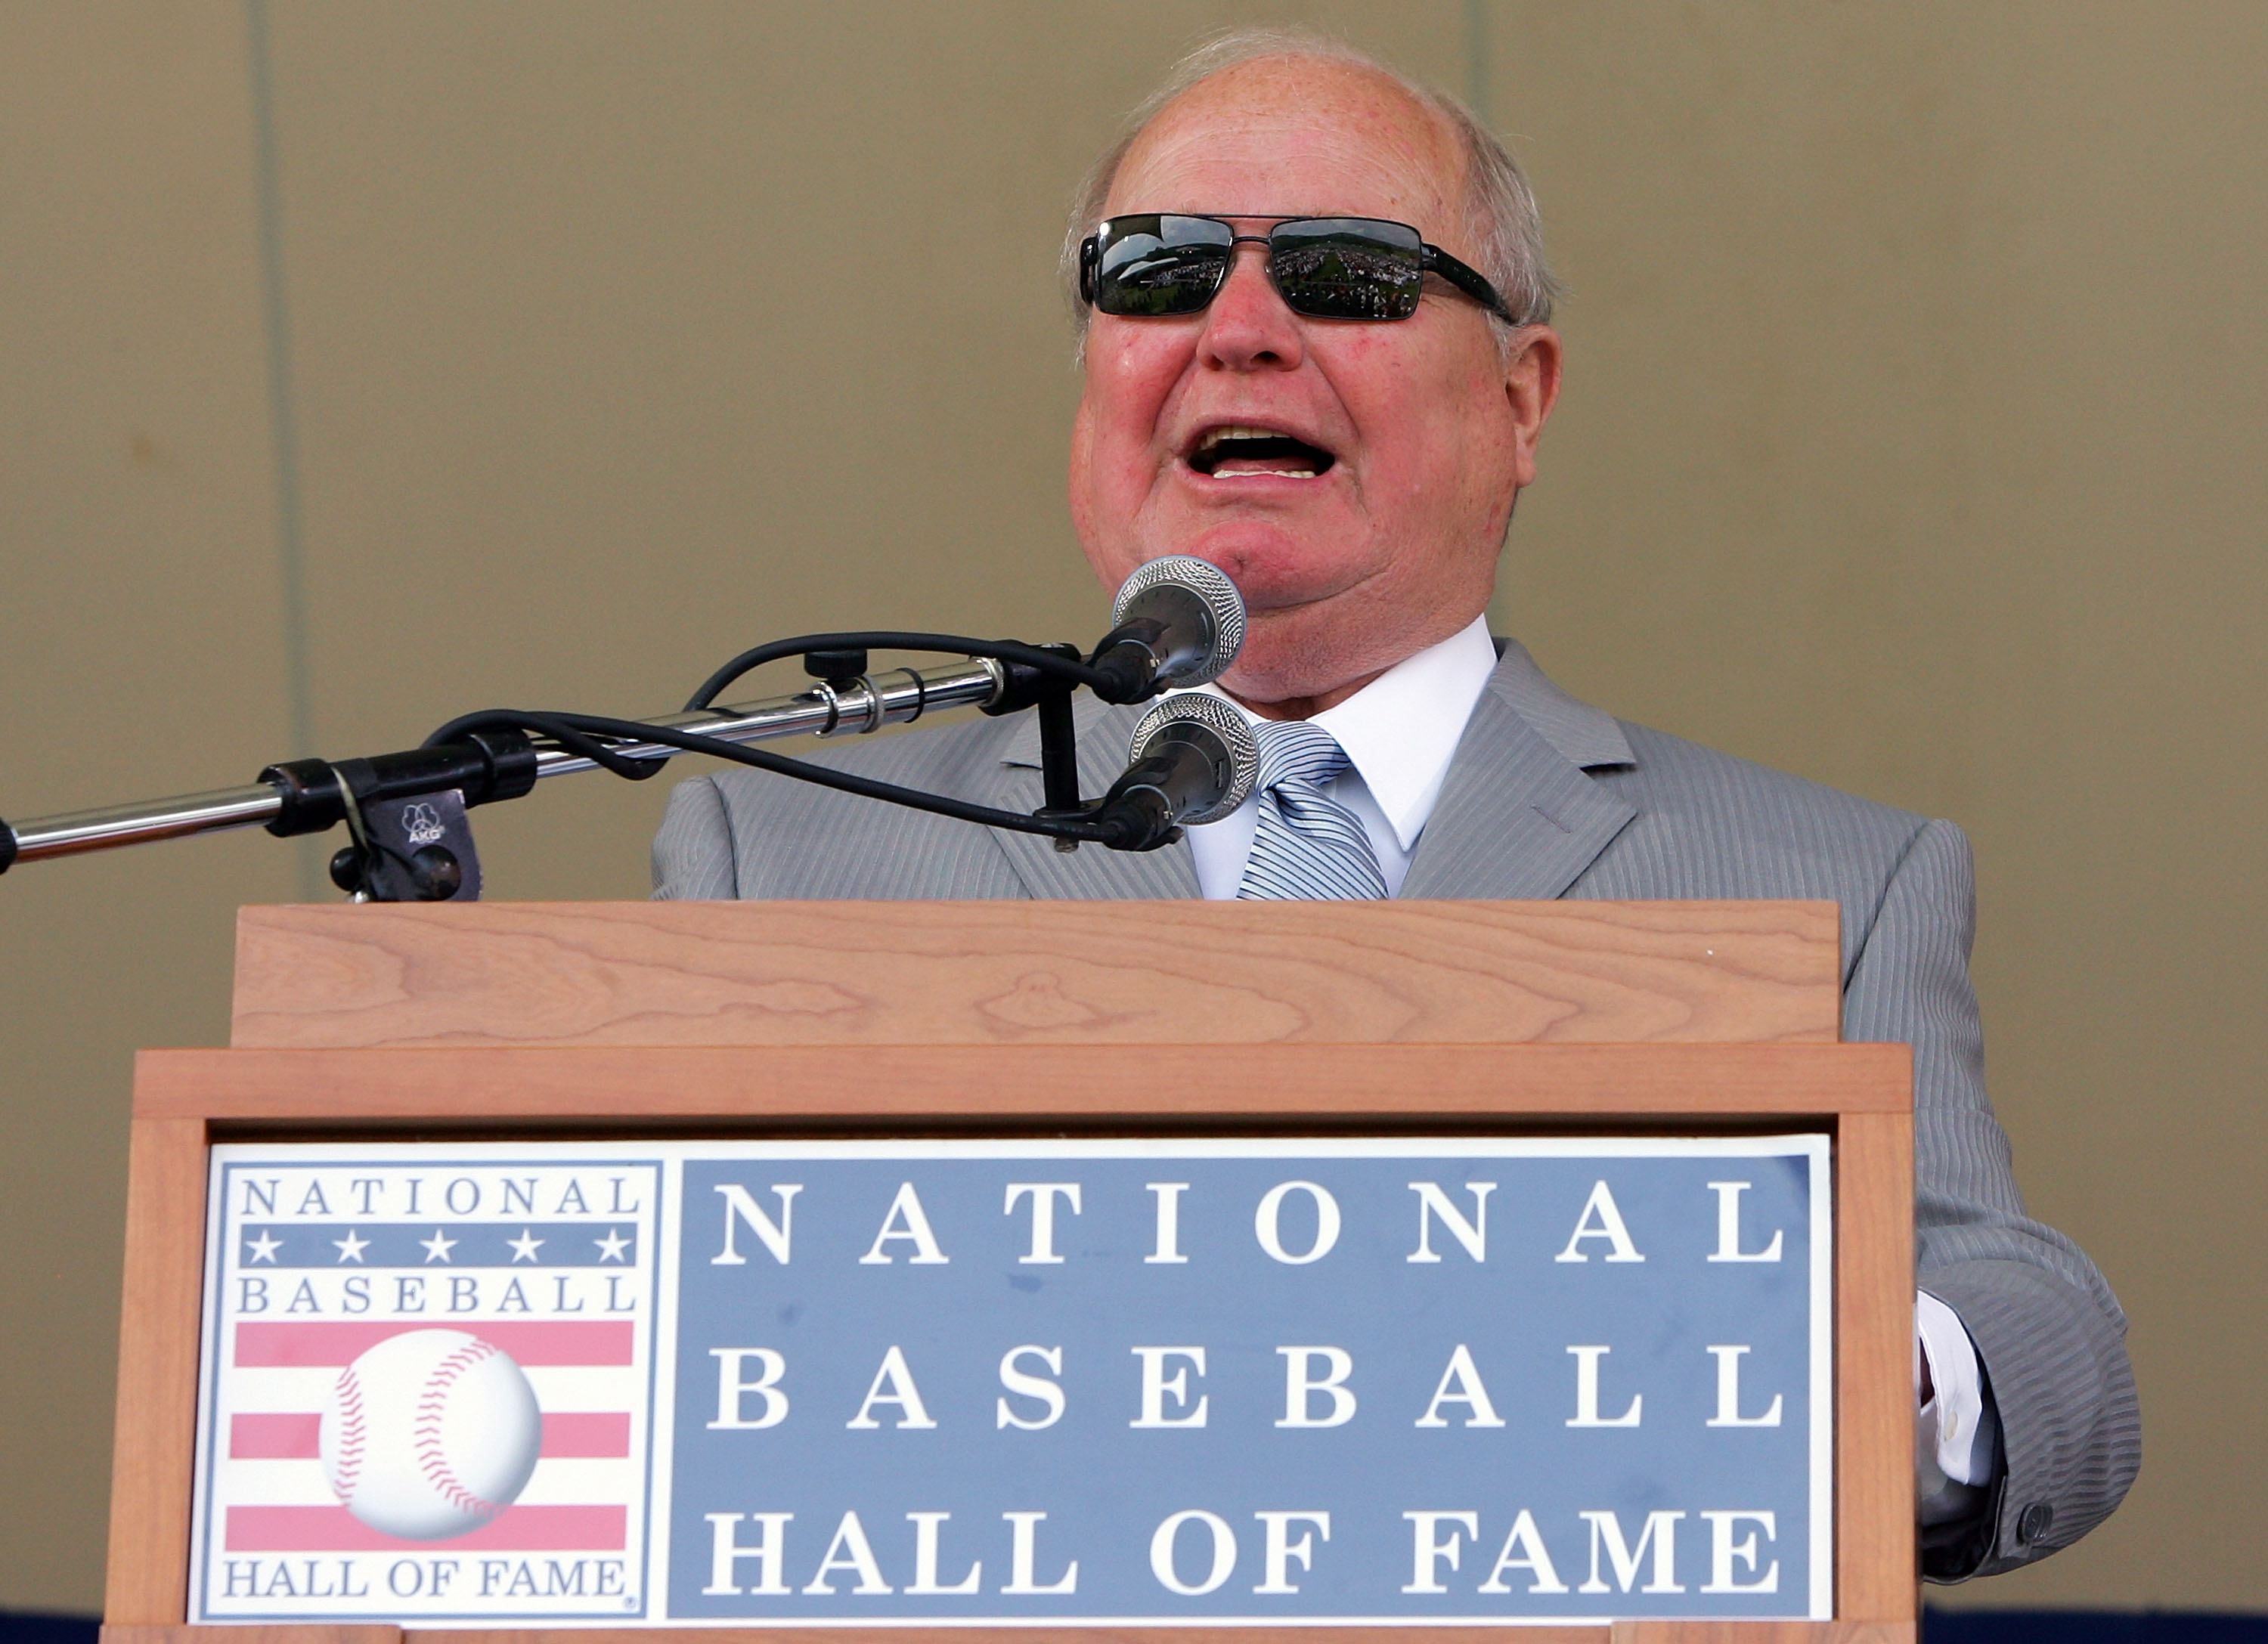 COOPERSTOWN, NY - JULY 27:  Dave Niehaus gives a speech after accepting the Ford C. Frick award for excellence in broadcasting at Clark Sports Center during the Baseball Hall of Fame induction ceremony on July 27, 2008 in Cooperstown, New York.  (Photo by